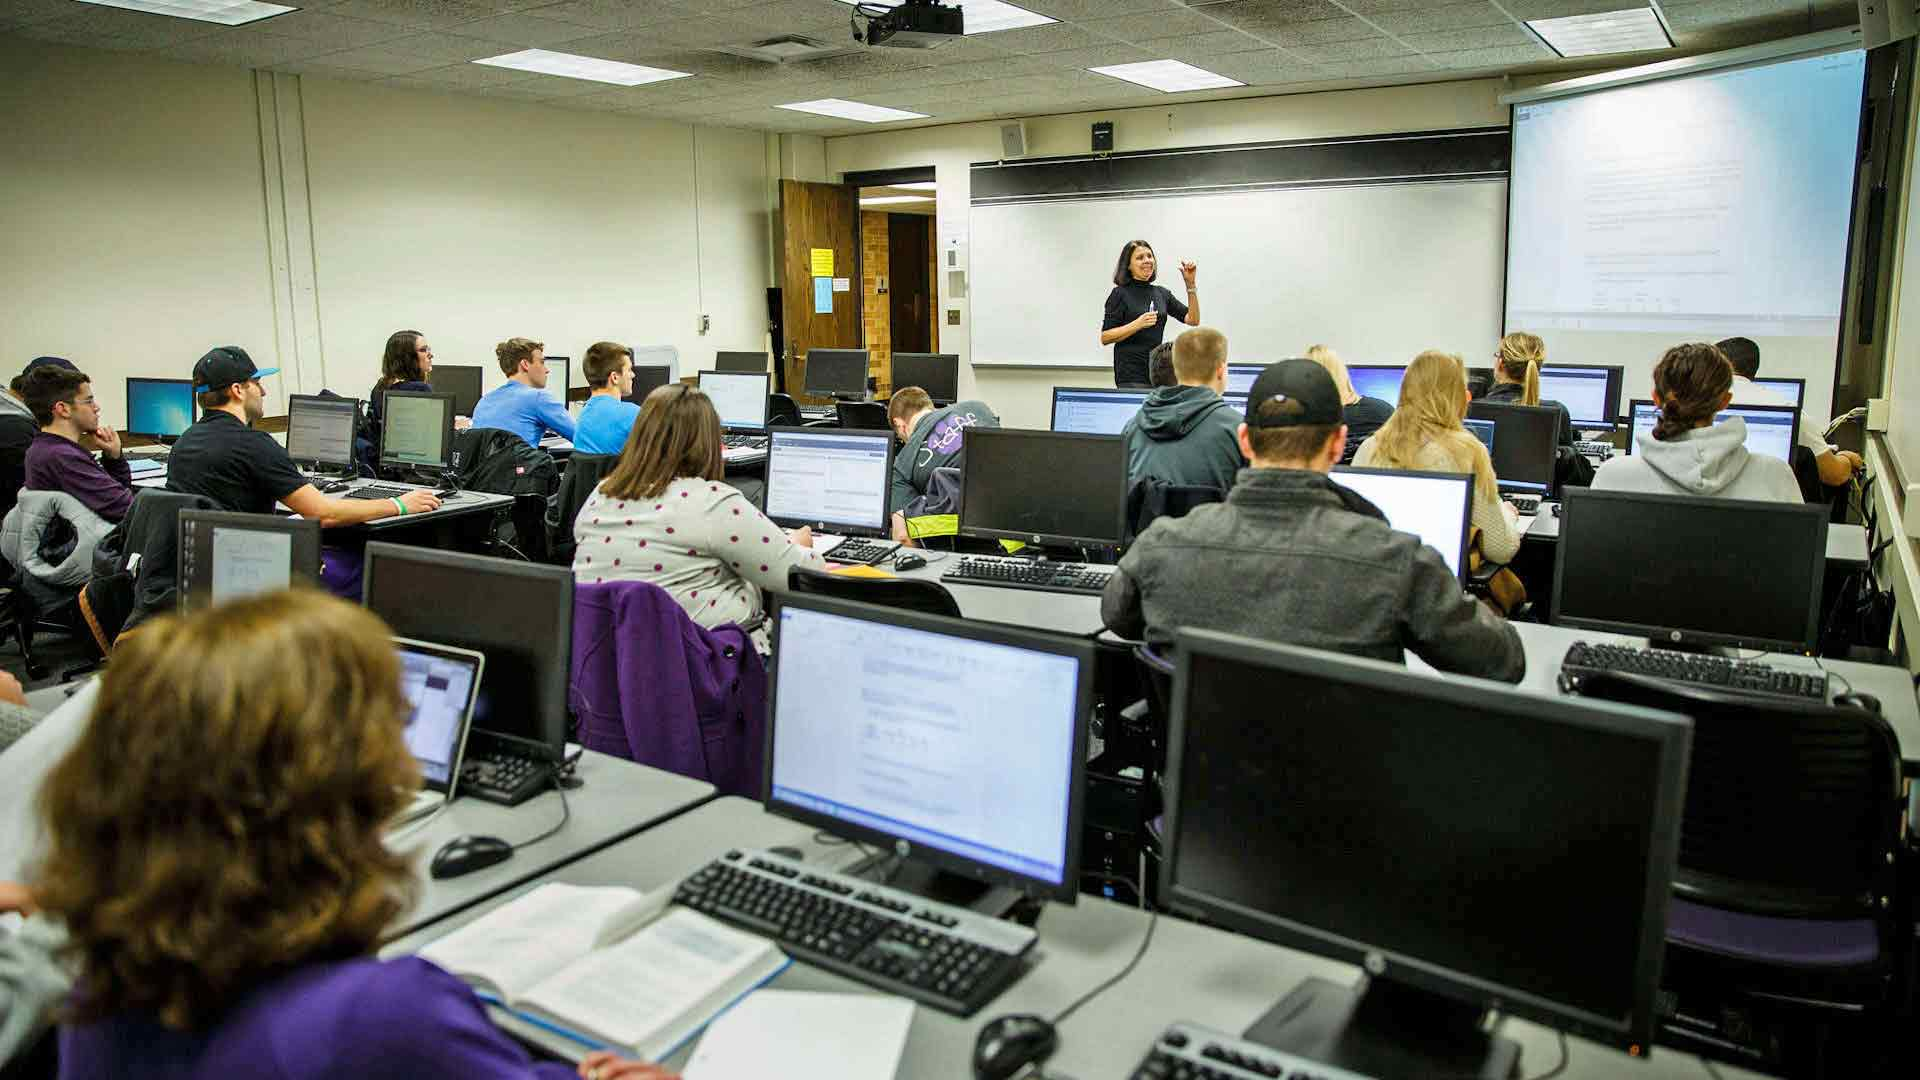 Economics Professor Luz Saavedra teaches an Economics Forecasting class in an O'Shaughnessy Education Center classroom.